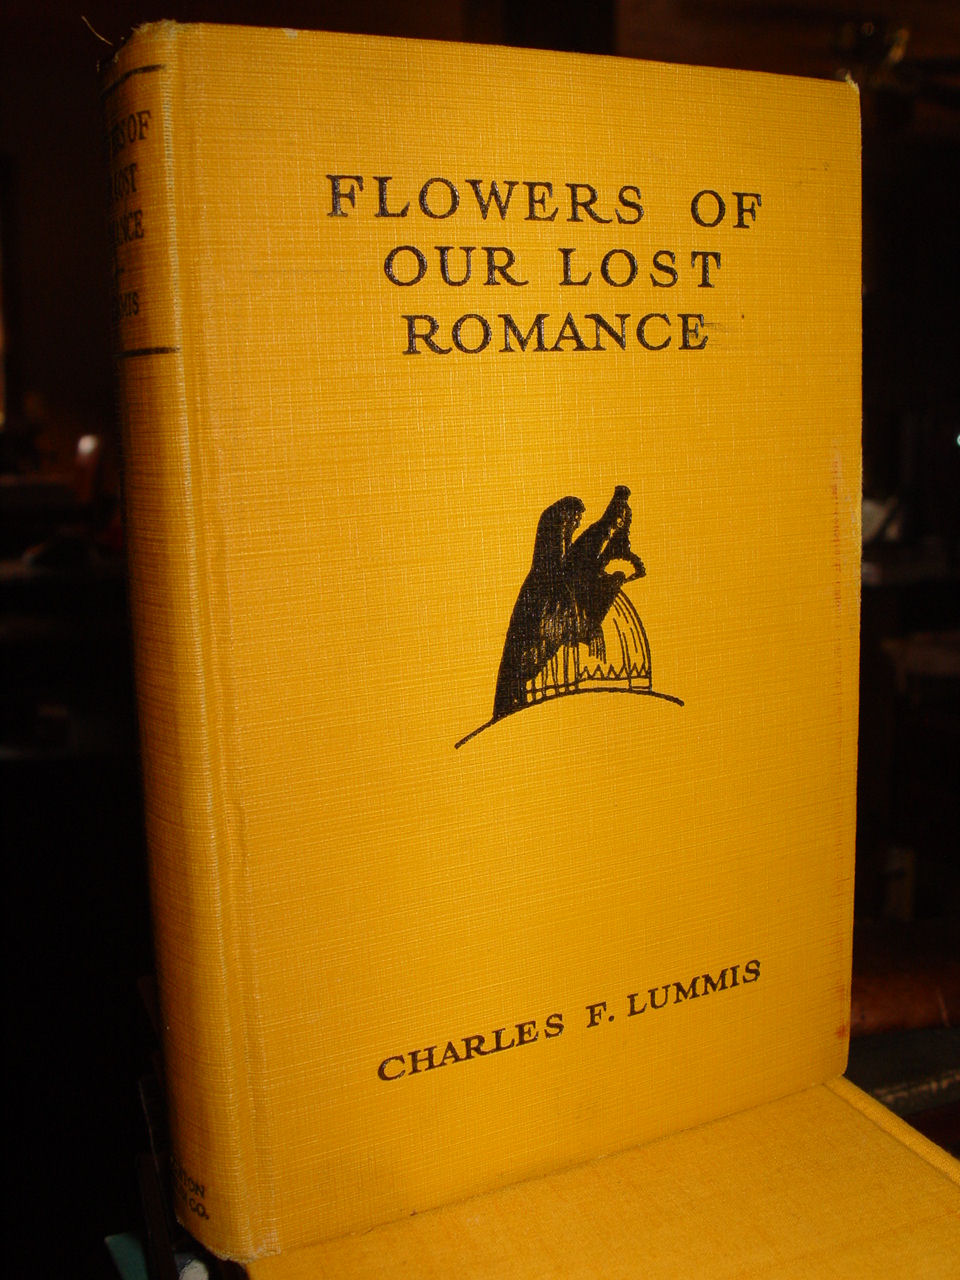 Flowers Of Our Lost Romance                                         ~ Charles F. Lummis, Publ.                                         Houghton, Mifflin Co. NY 1929